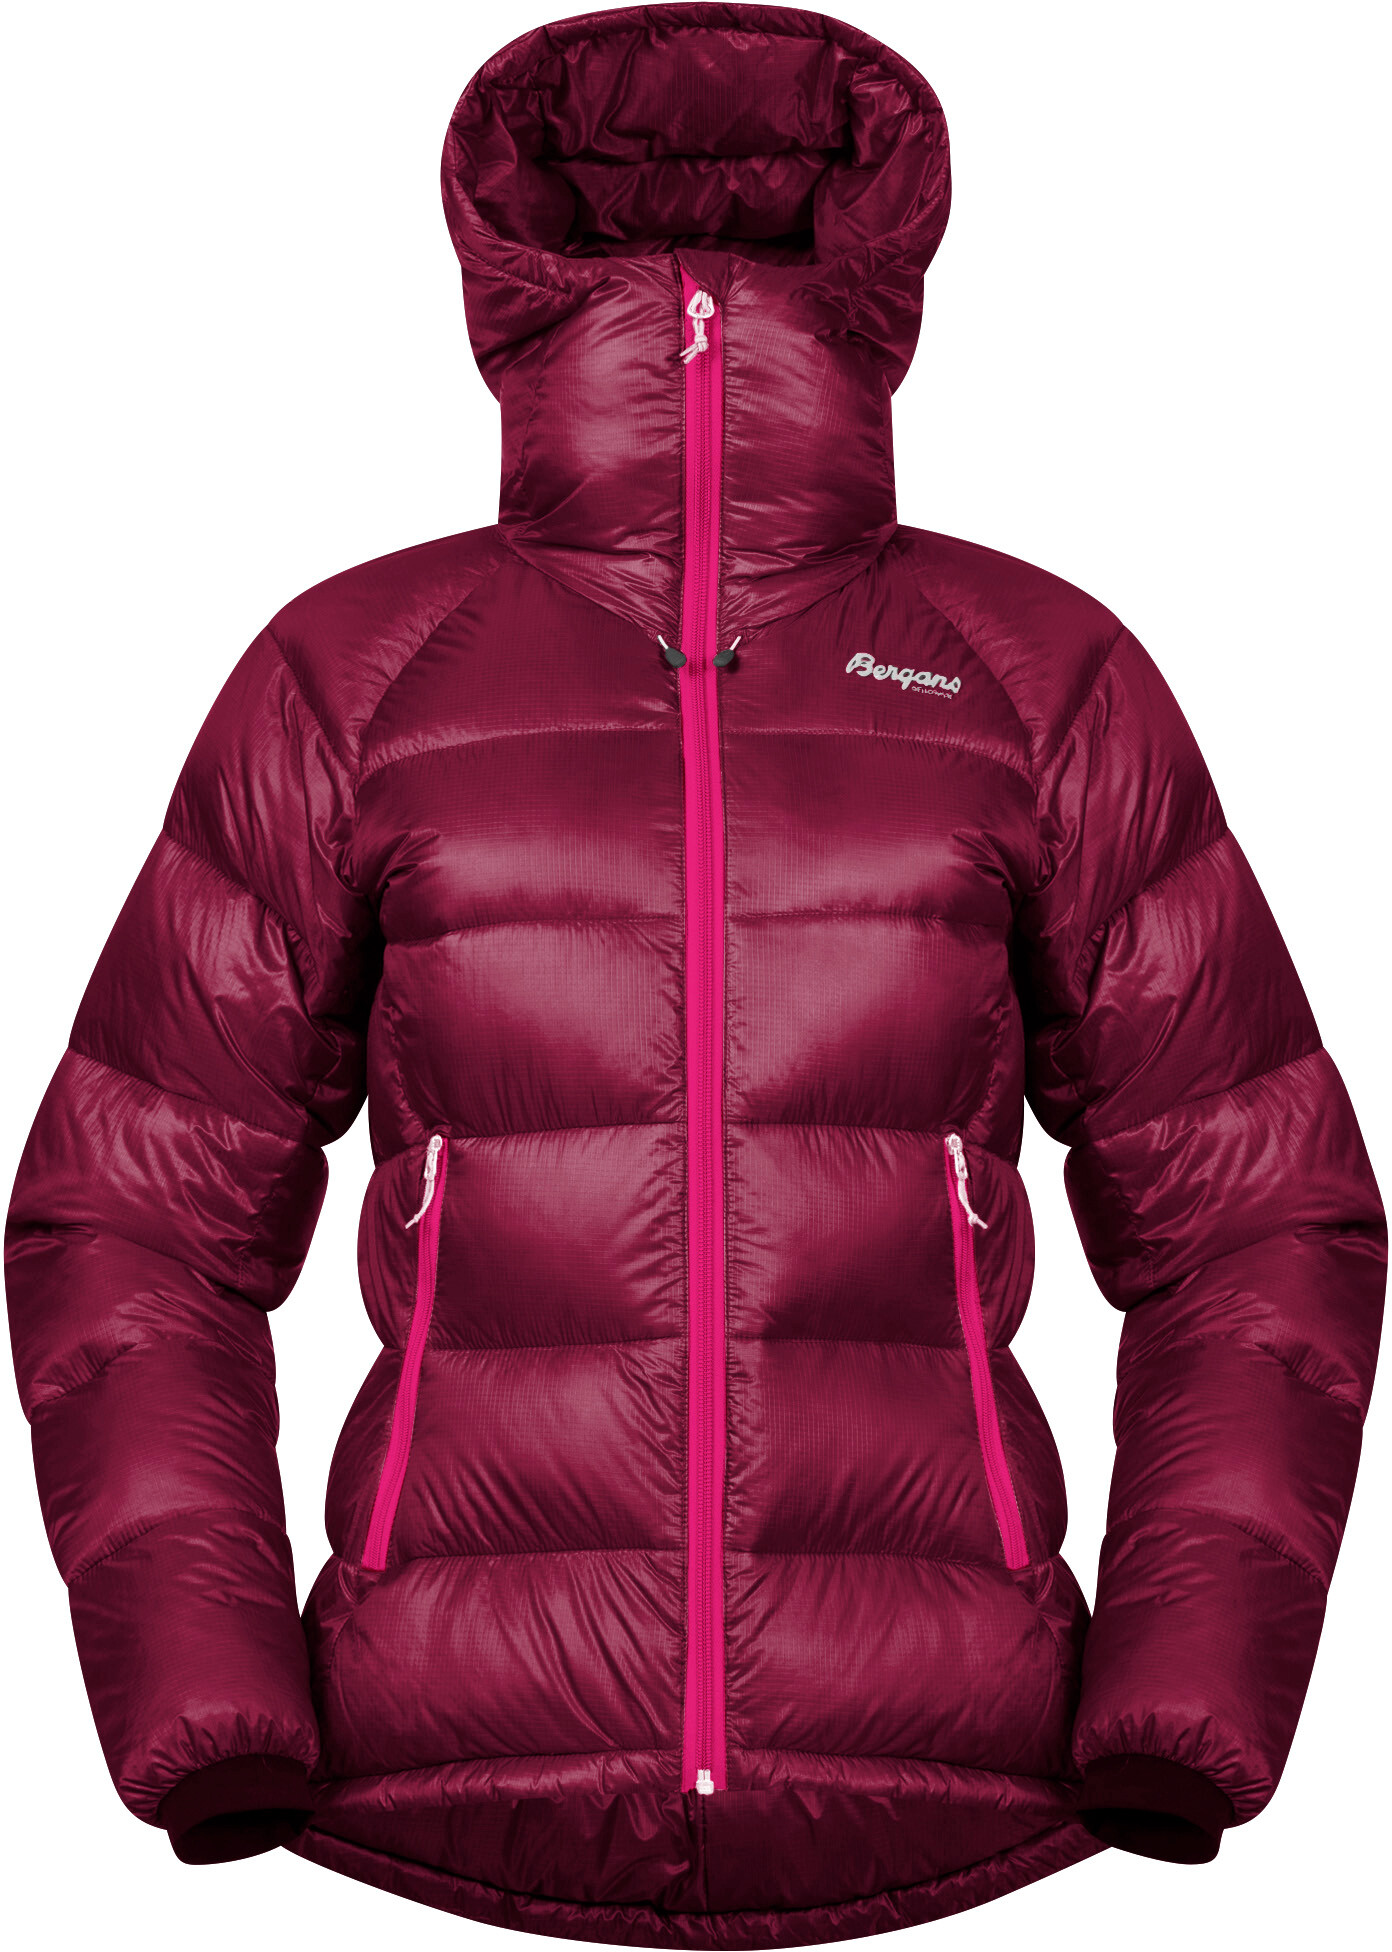 Bergans Slingsby Down Light Jacket with Hood Dam